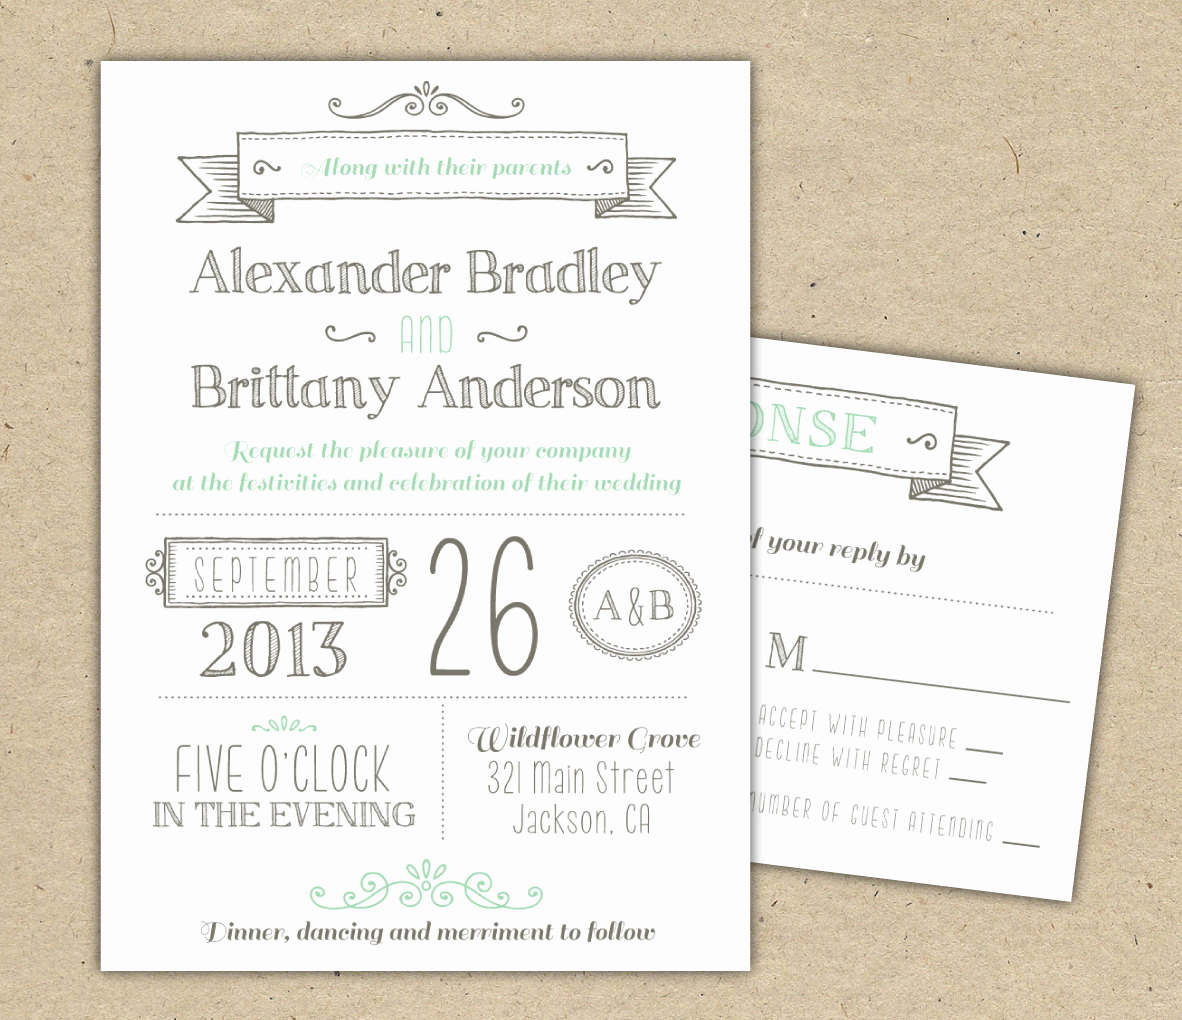 Wedding Invitation Design Templates Inspirational Wedding Invitation 1041 Sample Modern Invitation Template